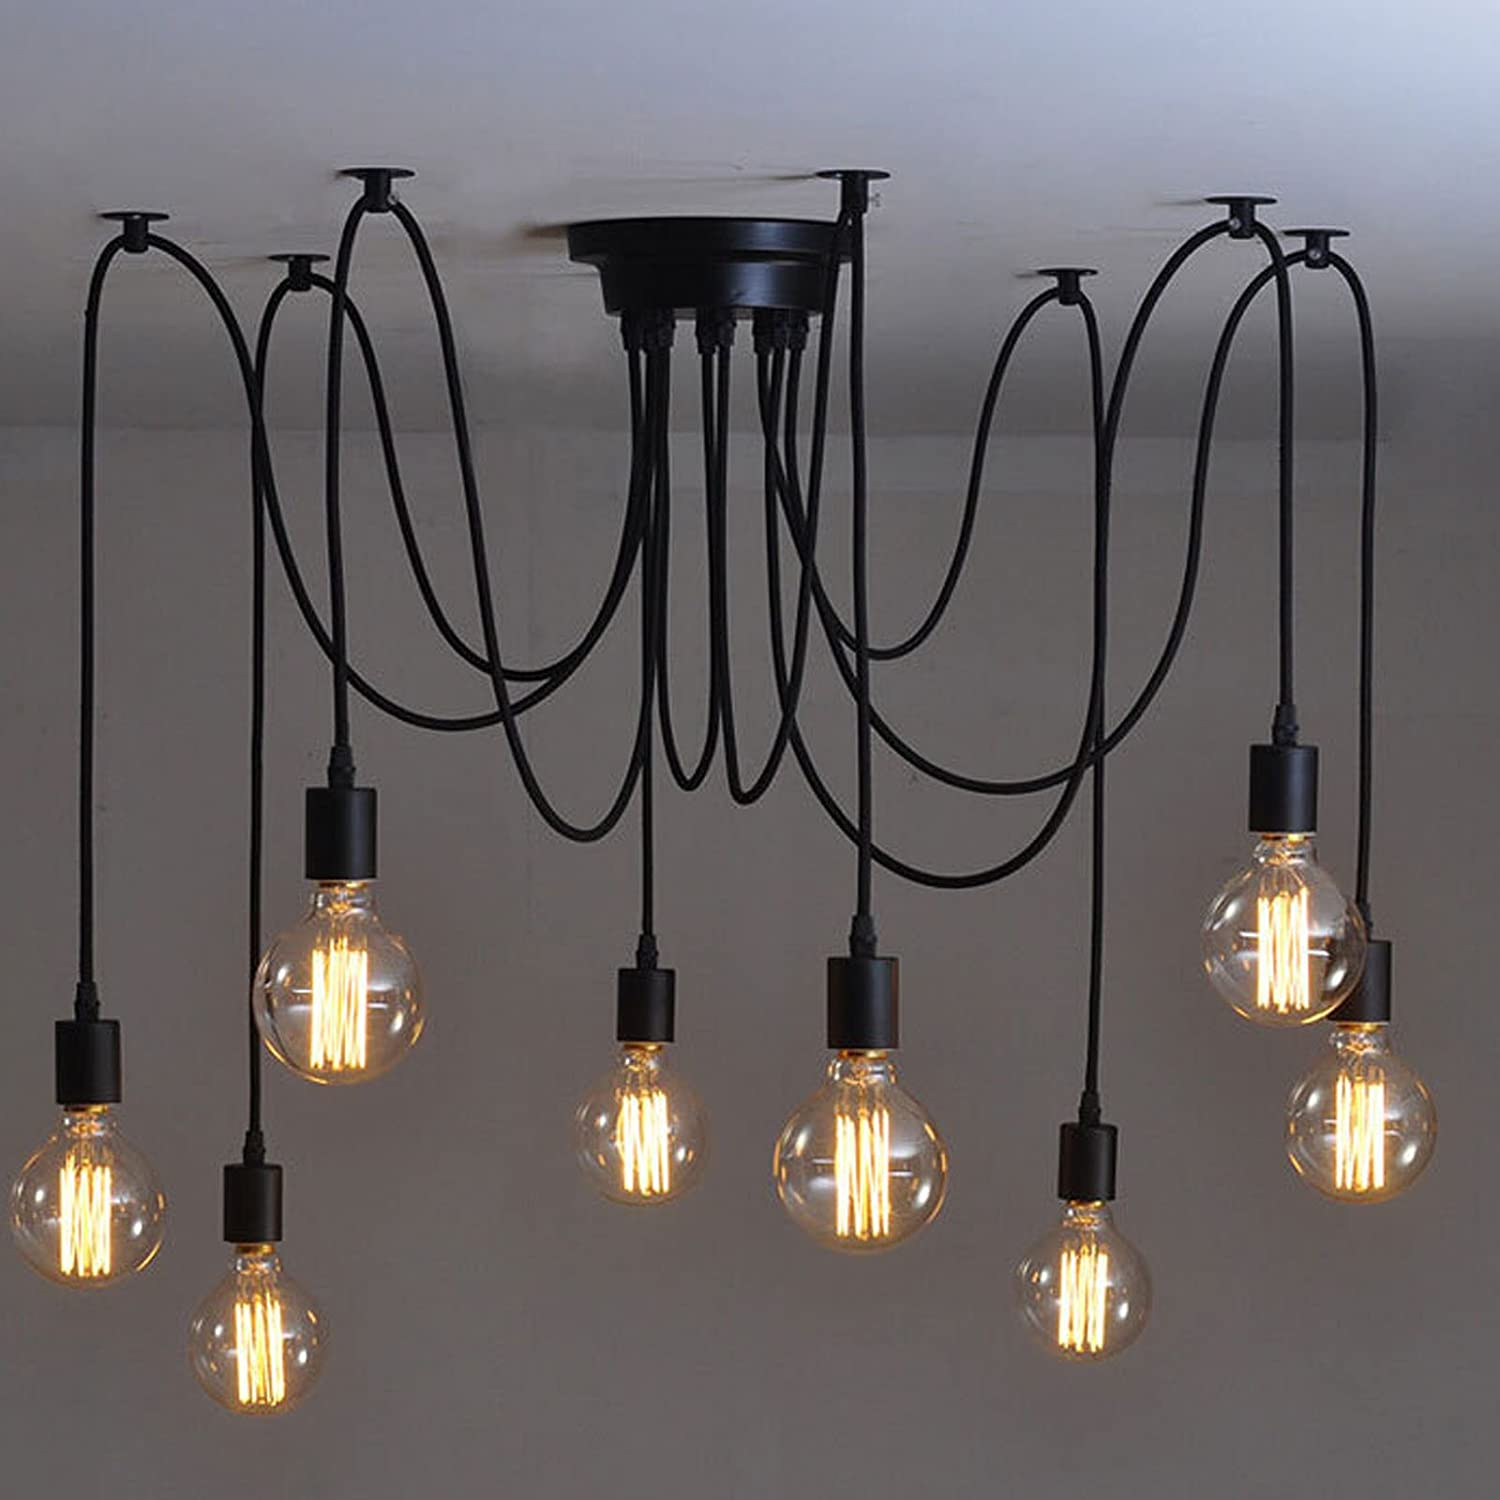 Lemonbest Vintage E27 Industrial Fixture Retro Pendant Light Ceiling Lamp  Chandelier 8 Bulb Light Sockets     Amazon.com